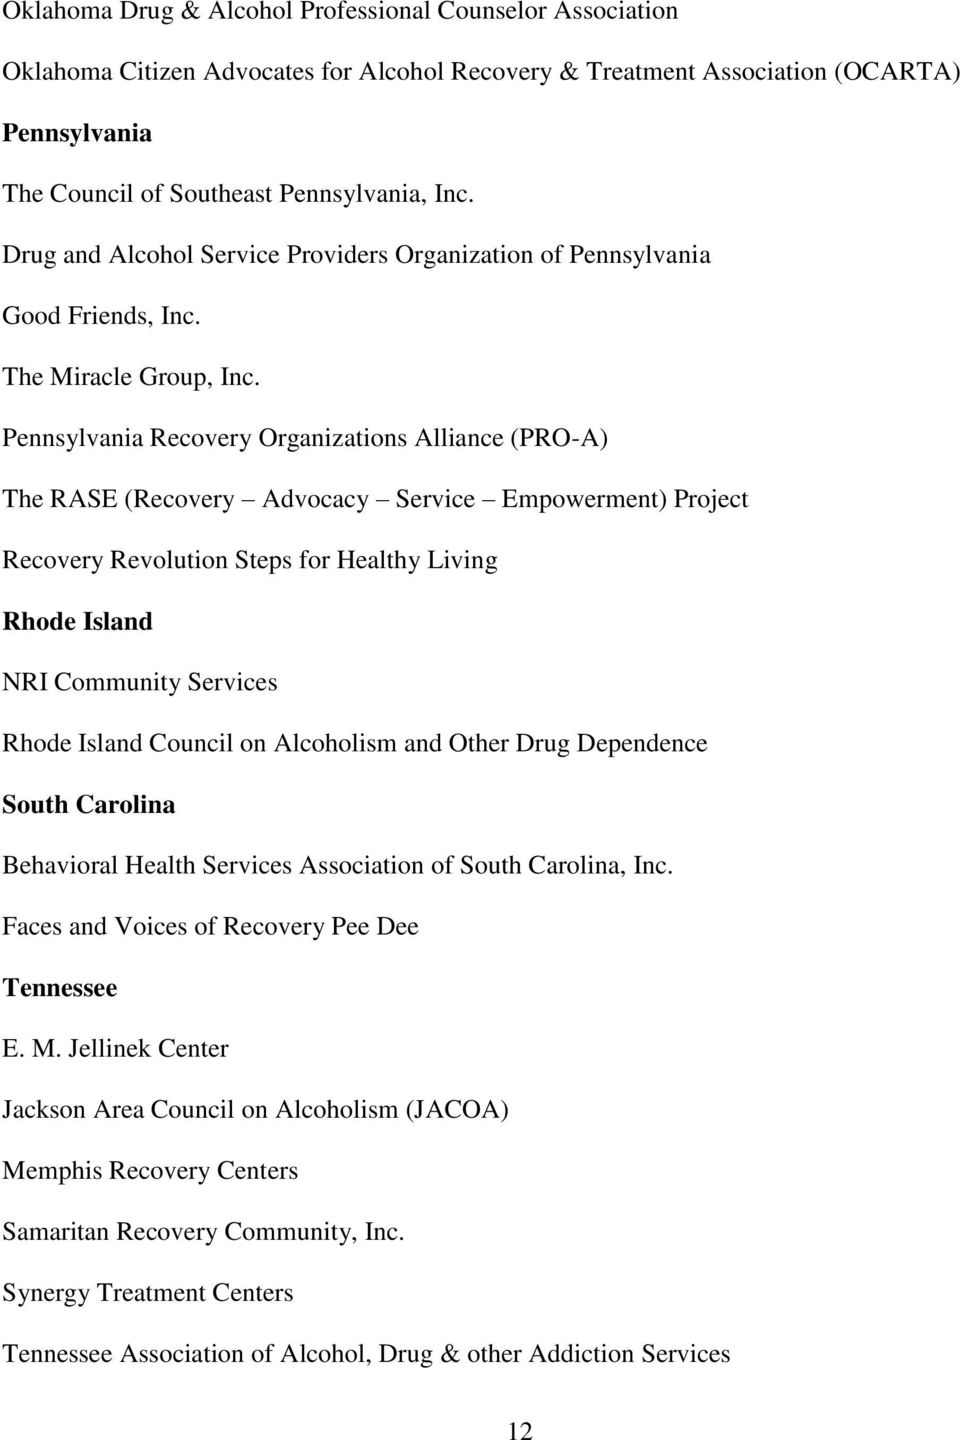 Pennsylvania Recovery Organizations Alliance (PRO-A) The RASE (Recovery Advocacy Service Empowerment) Project Recovery Revolution Steps for Healthy Living Rhode Island NRI Community Services Rhode